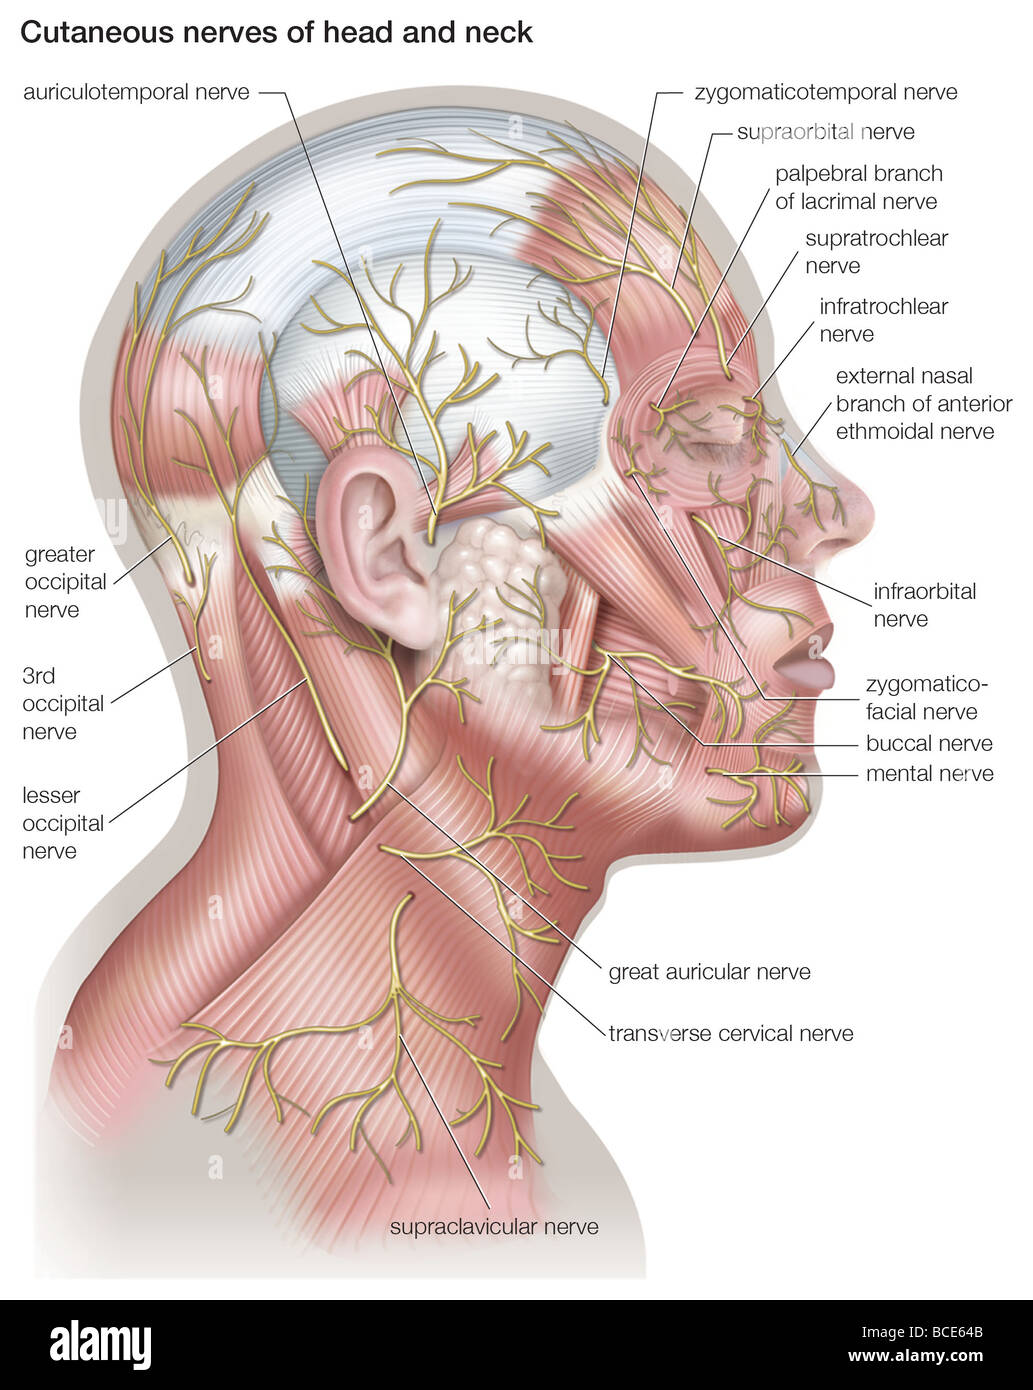 Diagram of the cutaneous nerves of the head and neck. - Stock Image